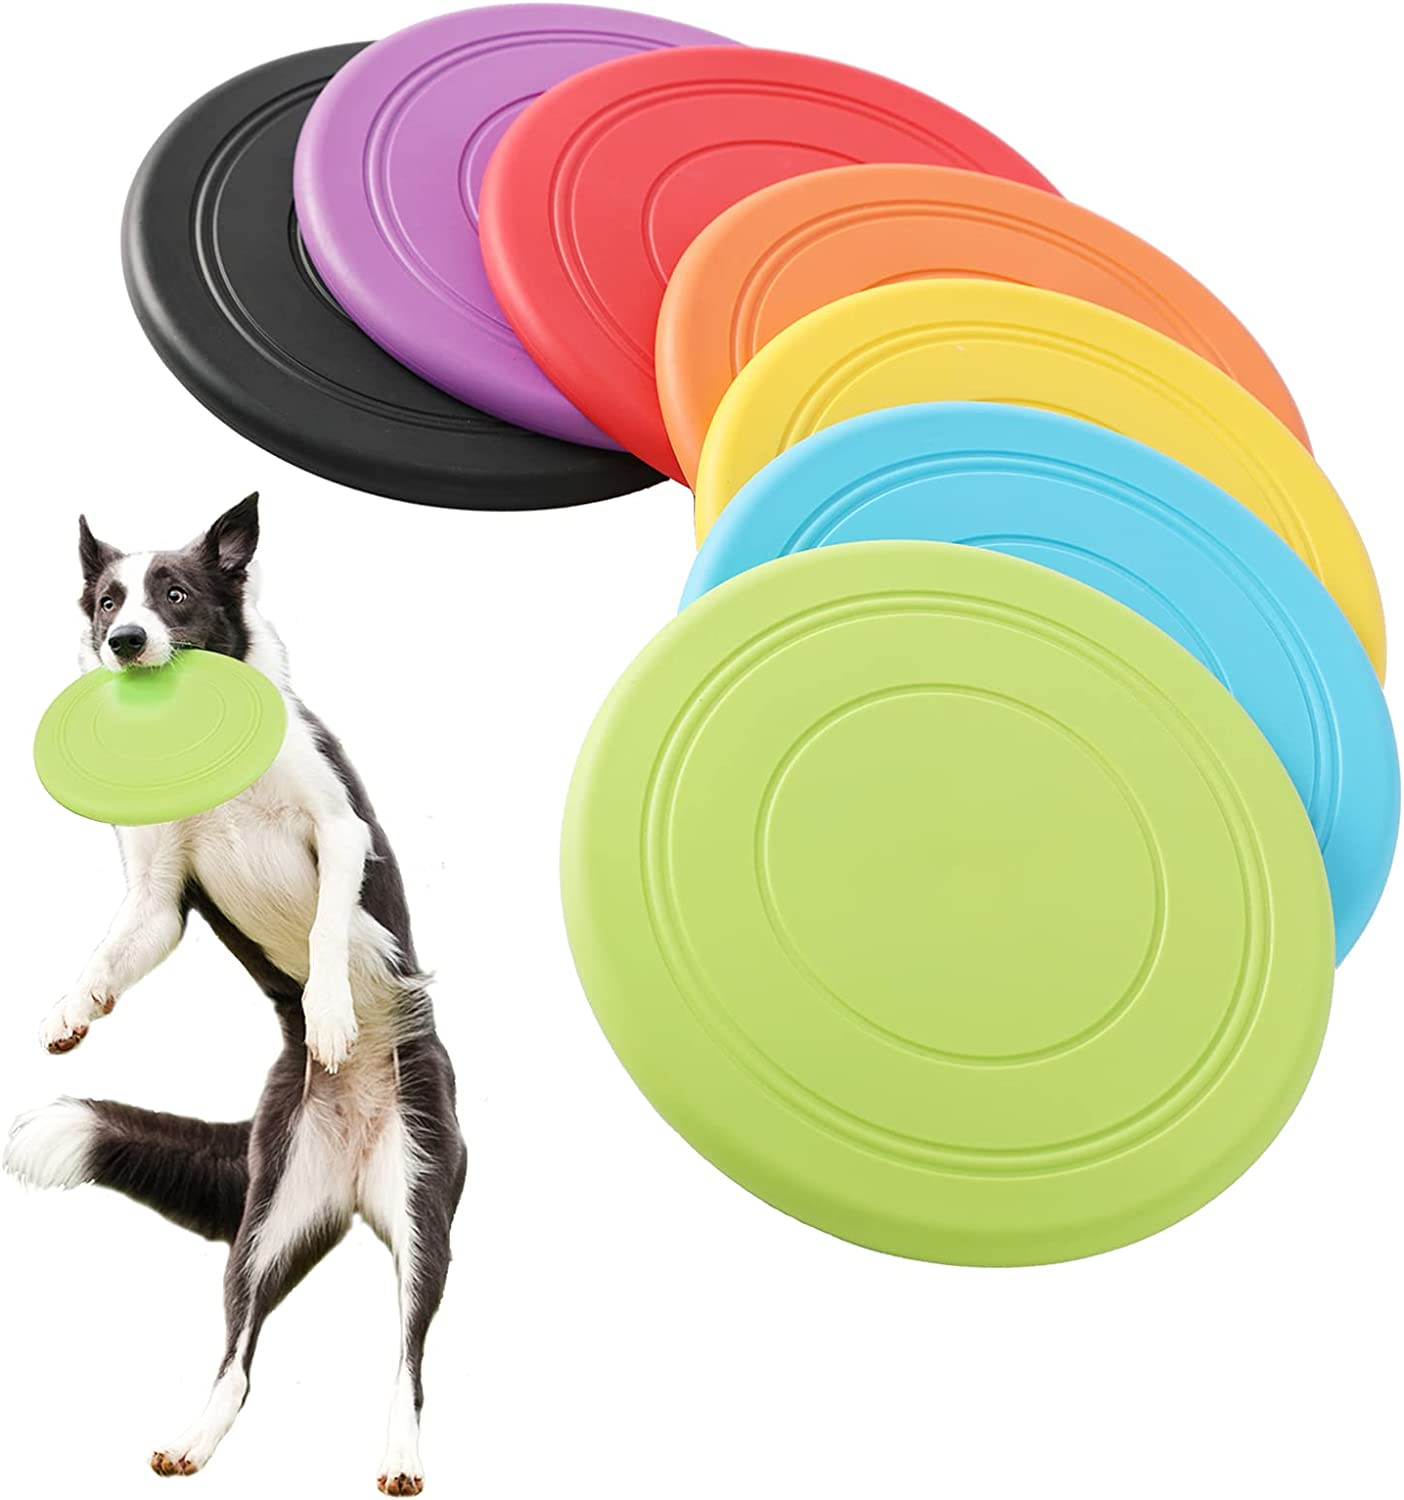 Tipatyard 7 Pack Dog Frisbee Ranking TOP1 Puppy Toys Silicone Do Wholesale Soft